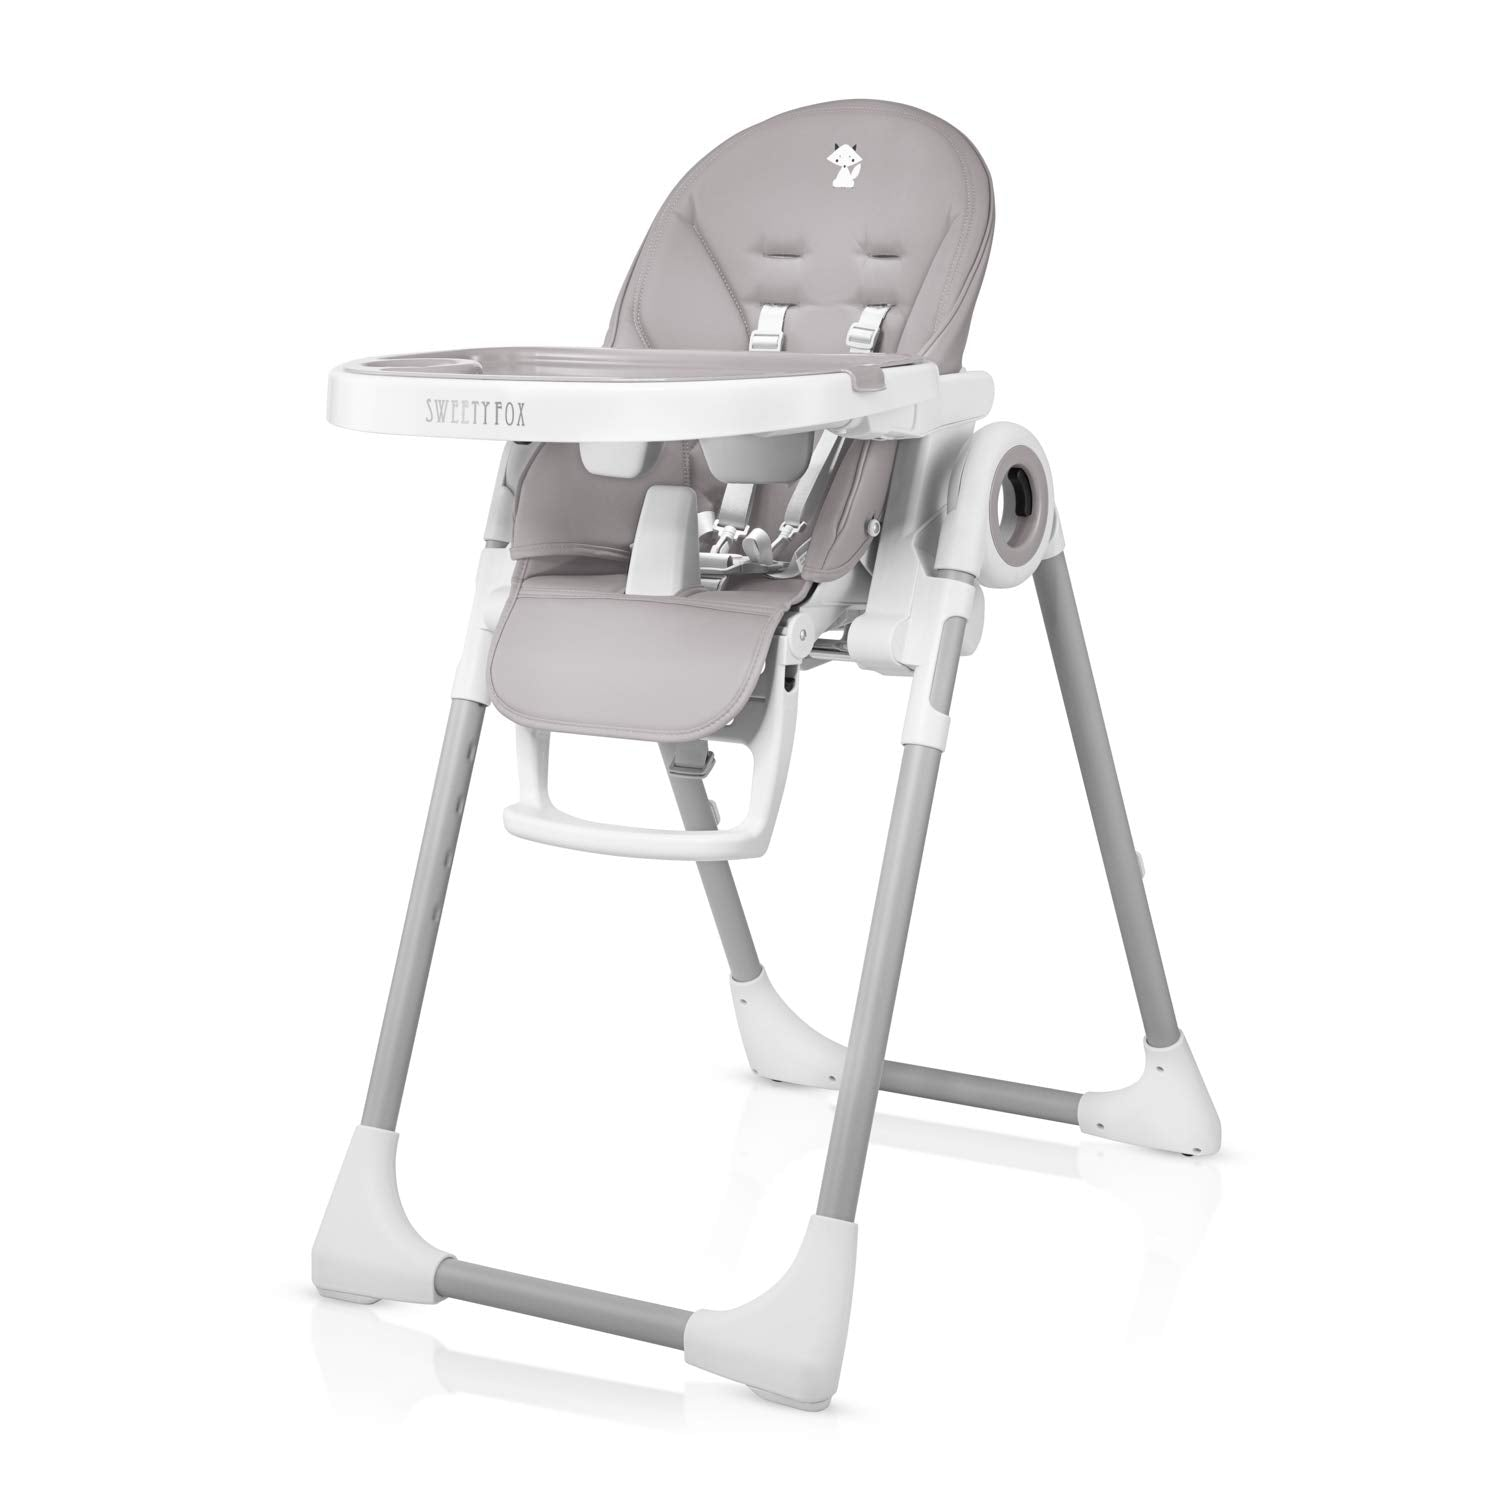 Adjustable, Folding, Unicorn Themed Baby High Chair - Grey